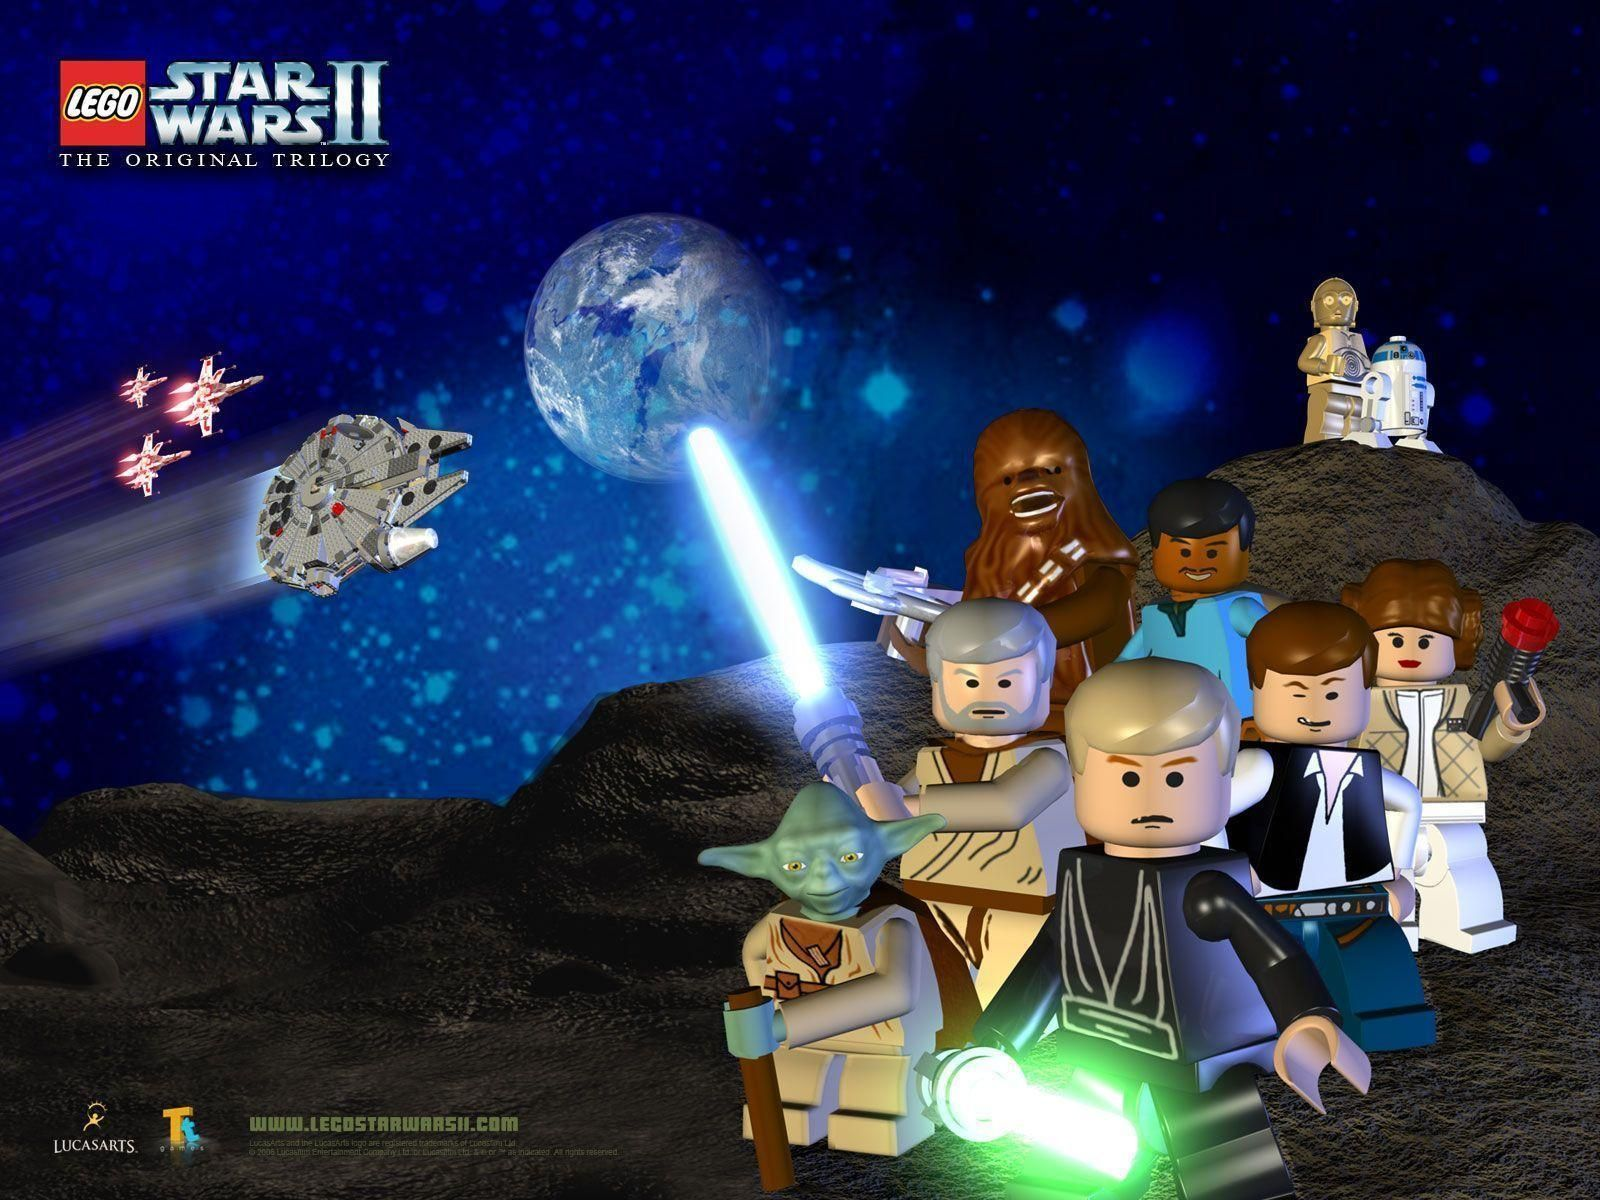 Image Result For Lego Star Wars The Original Trilogy Lego Star Wars Star Wars Wallpaper Star Wars Characters